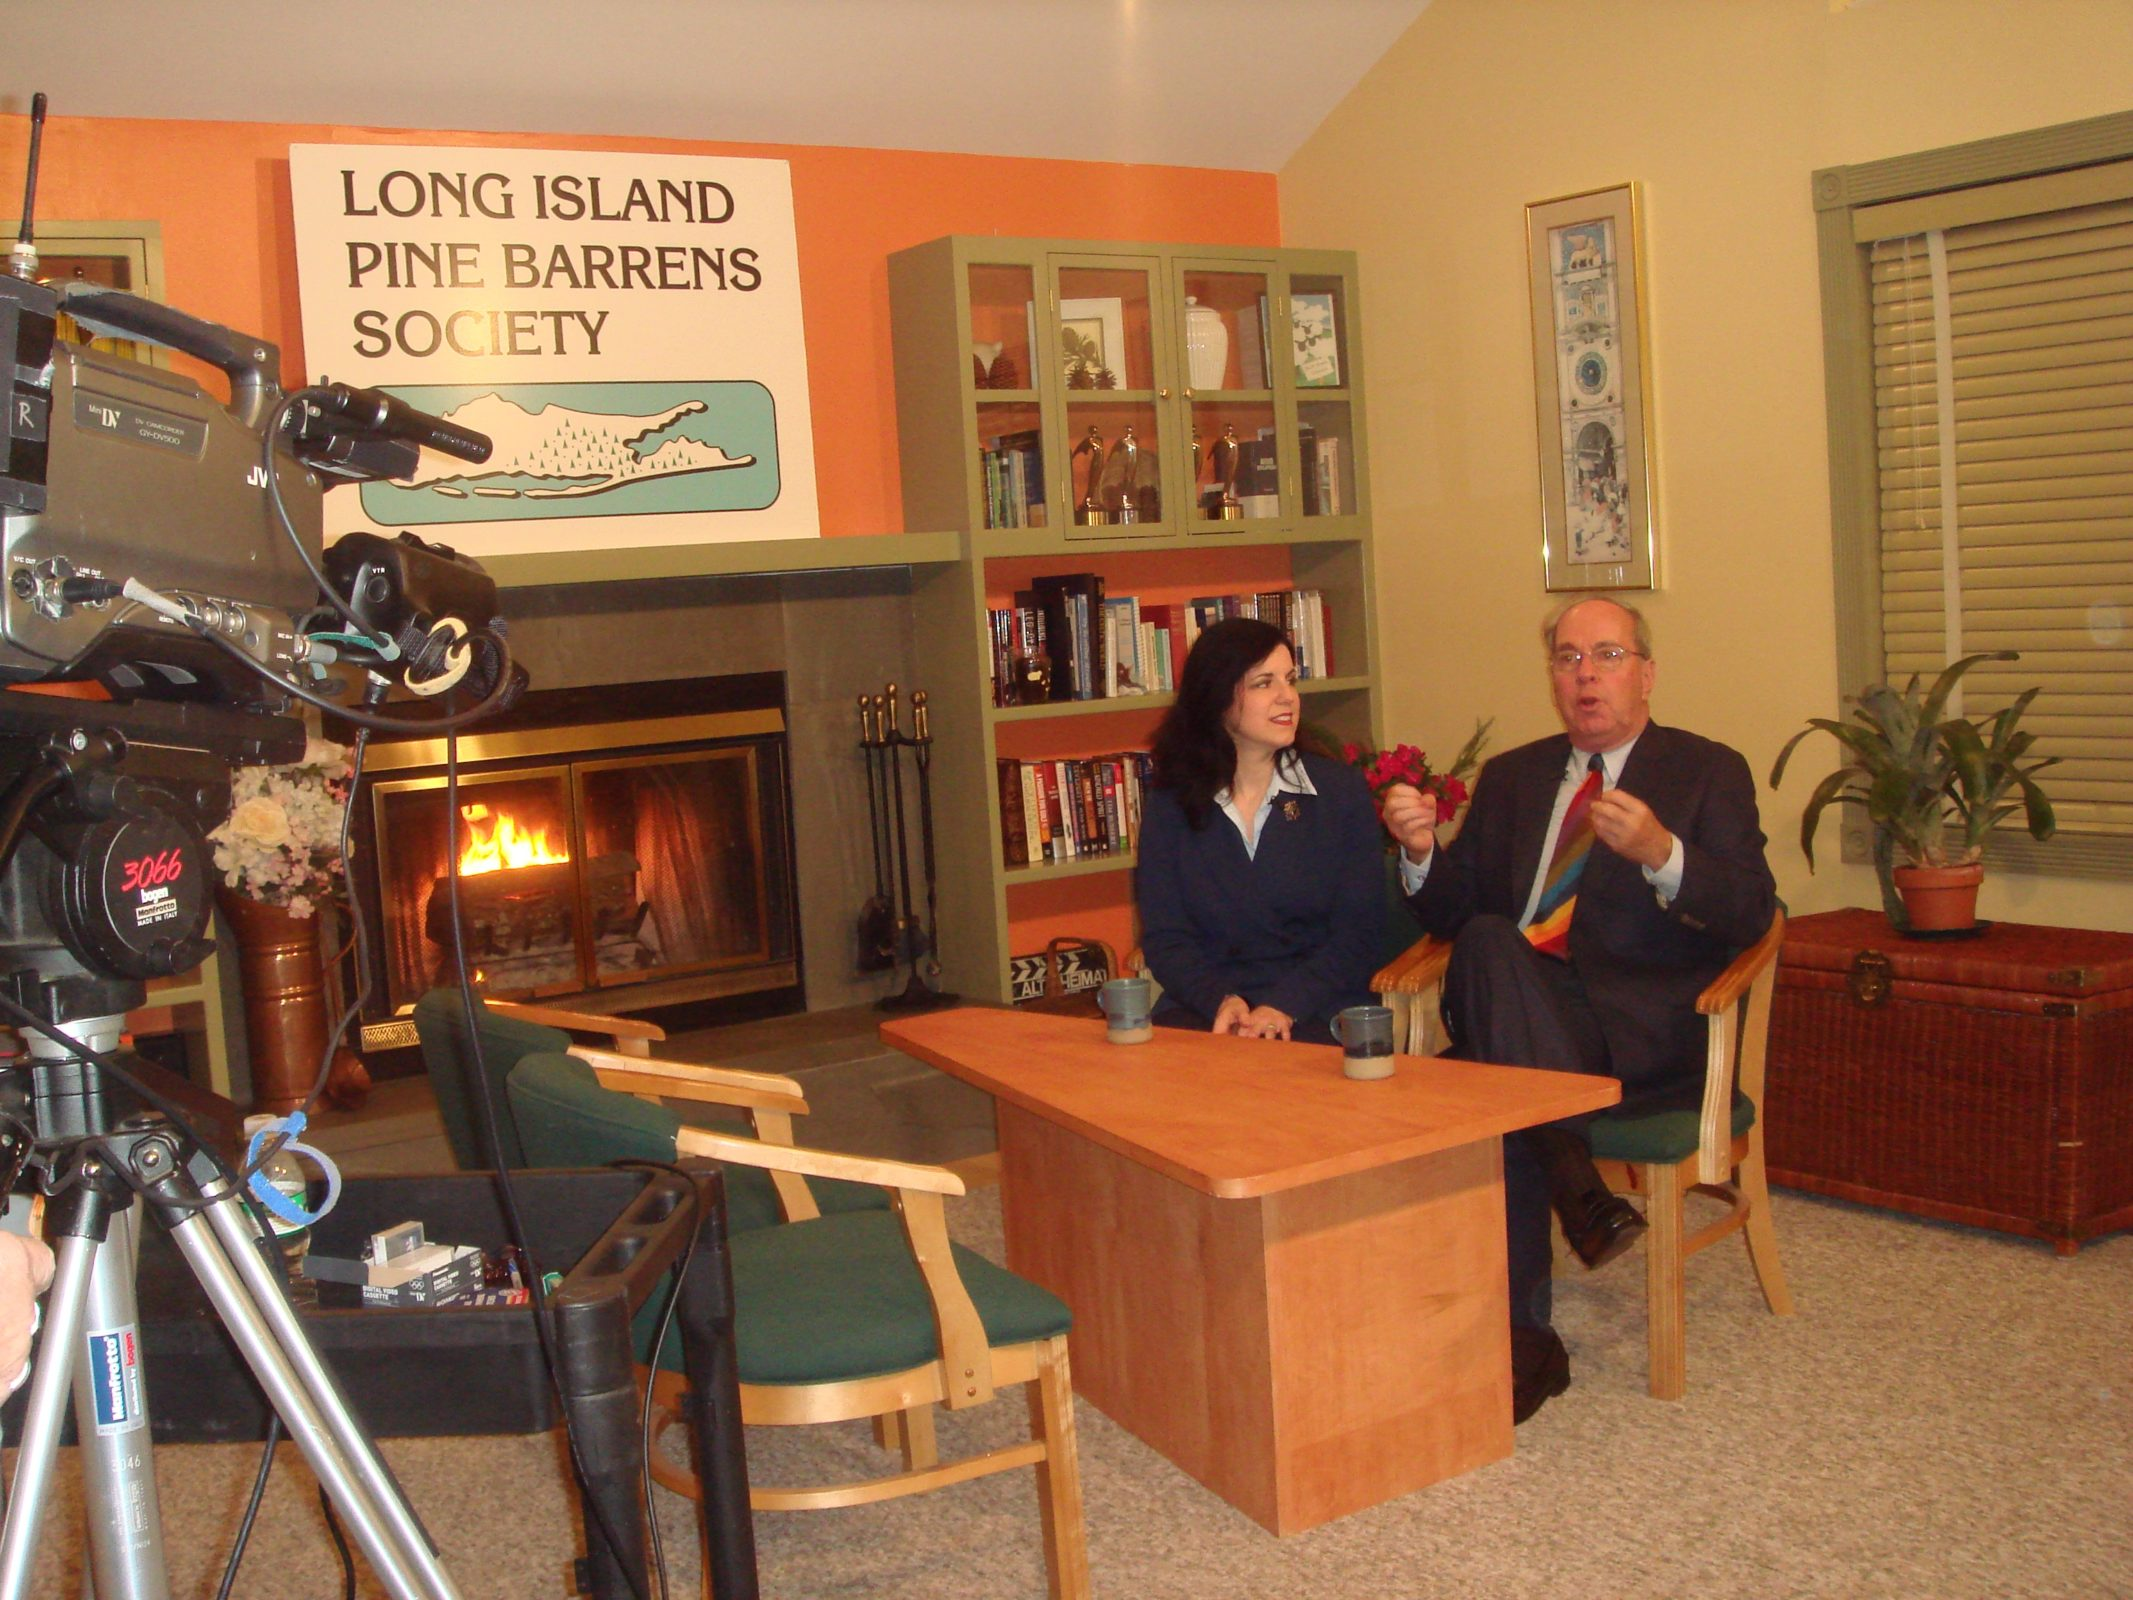 Long Island Pine Barrens Society TV Program